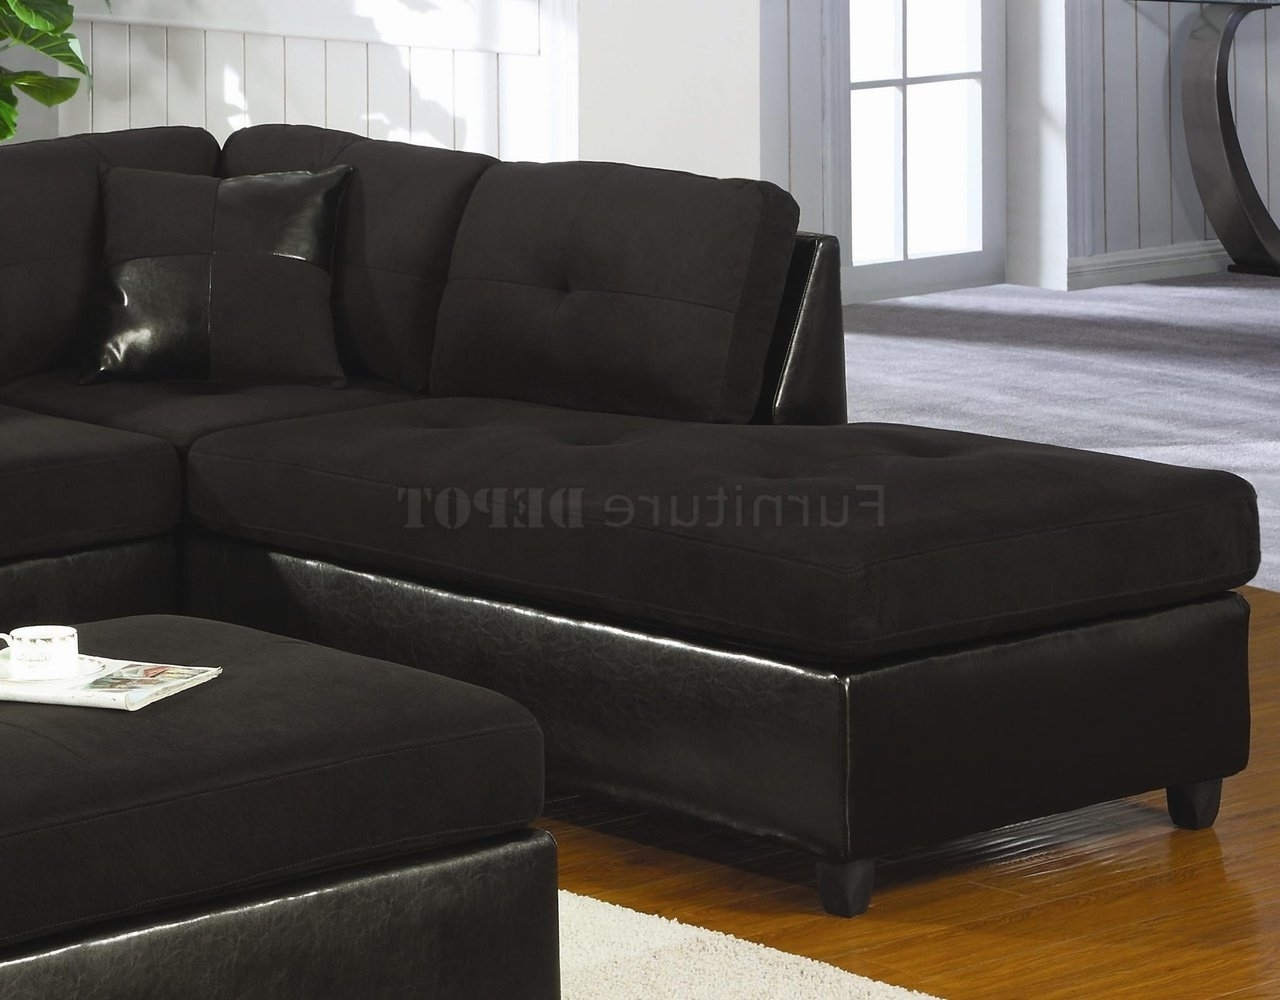 Trendy Black Microsuede Couch (View 12 of 20)